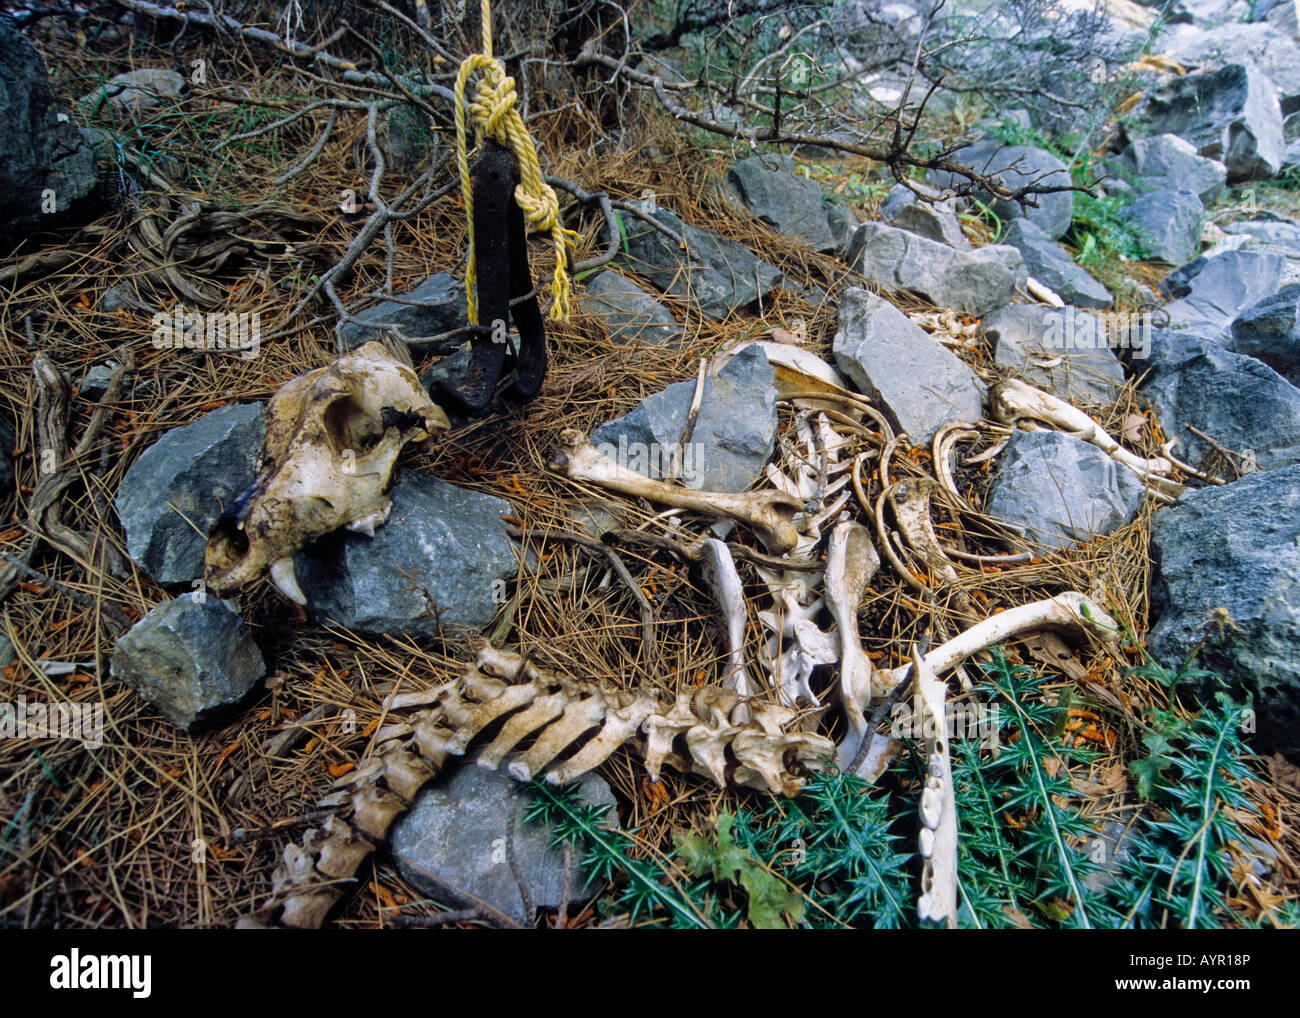 Animal cruelty, skeleton of a dog, tied-up and left to die of starvation, Samaria Gorge, Crete, Greece - Stock Image